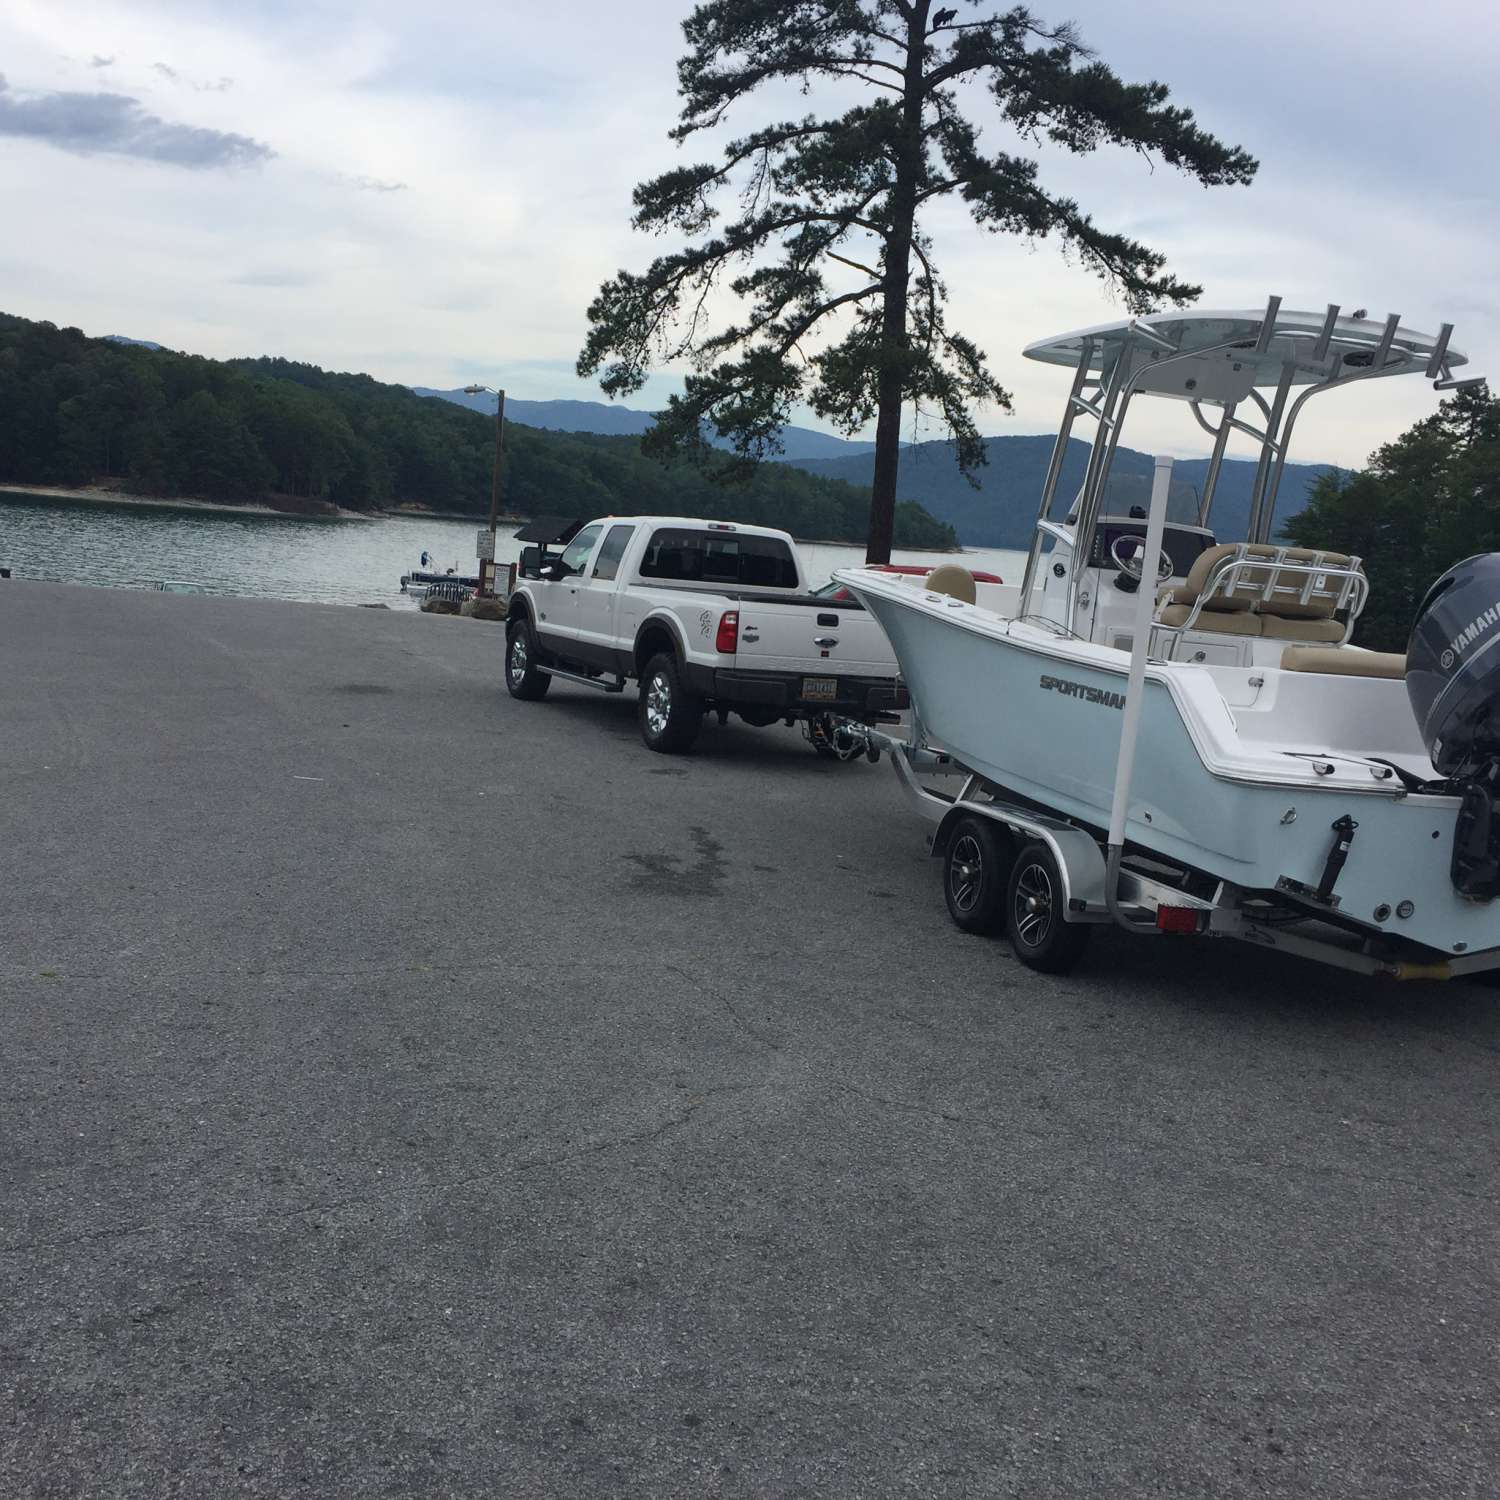 Title: Lake Jocassee - On board their Sportsman Open 212 Center Console - Location: Suwanee, Georgia. Participating in the Photo Contest #SportsmanJune2017